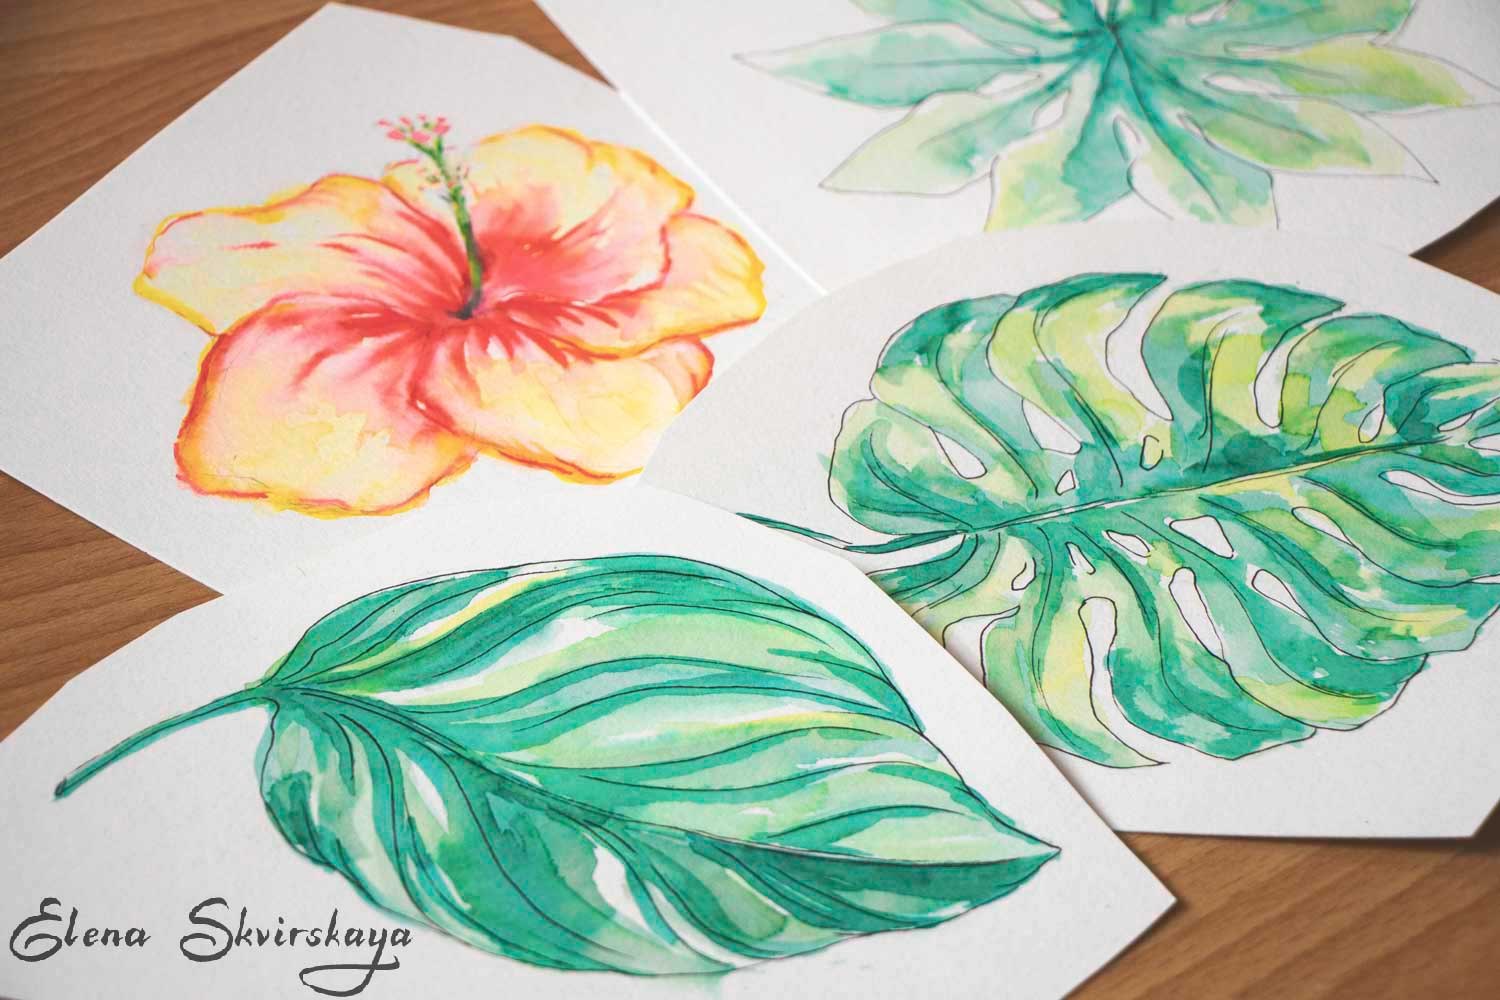 watercolor tropical flowers and leaves, sketches for a textile print, to be assembled later in Photoshop